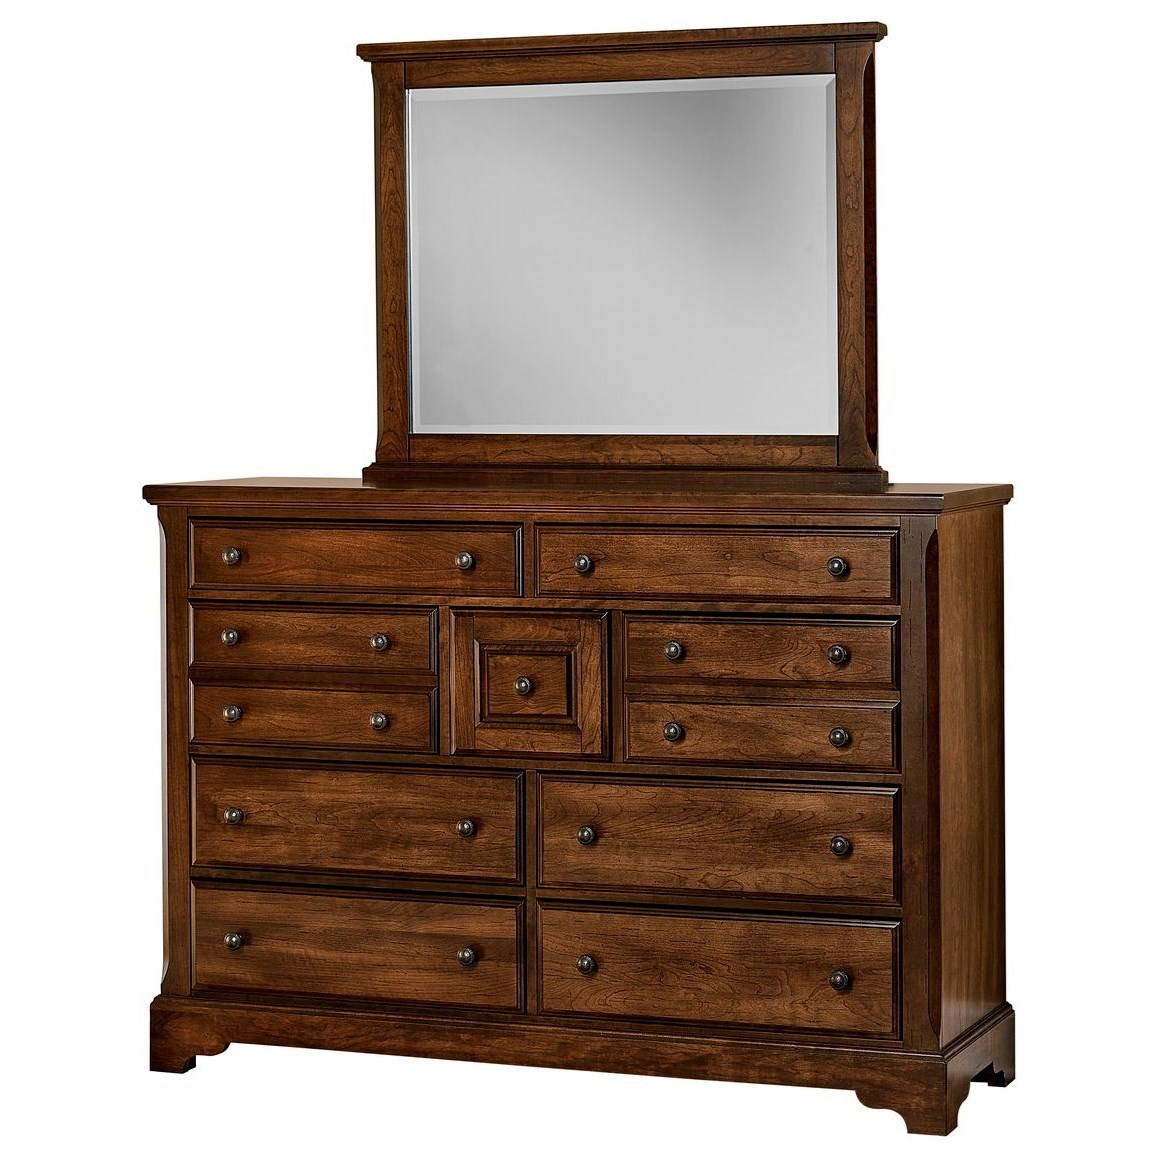 Artisan Choices Villa Triple Dresser & Landscape Mirror by Artisan & Post at Rooms and Rest